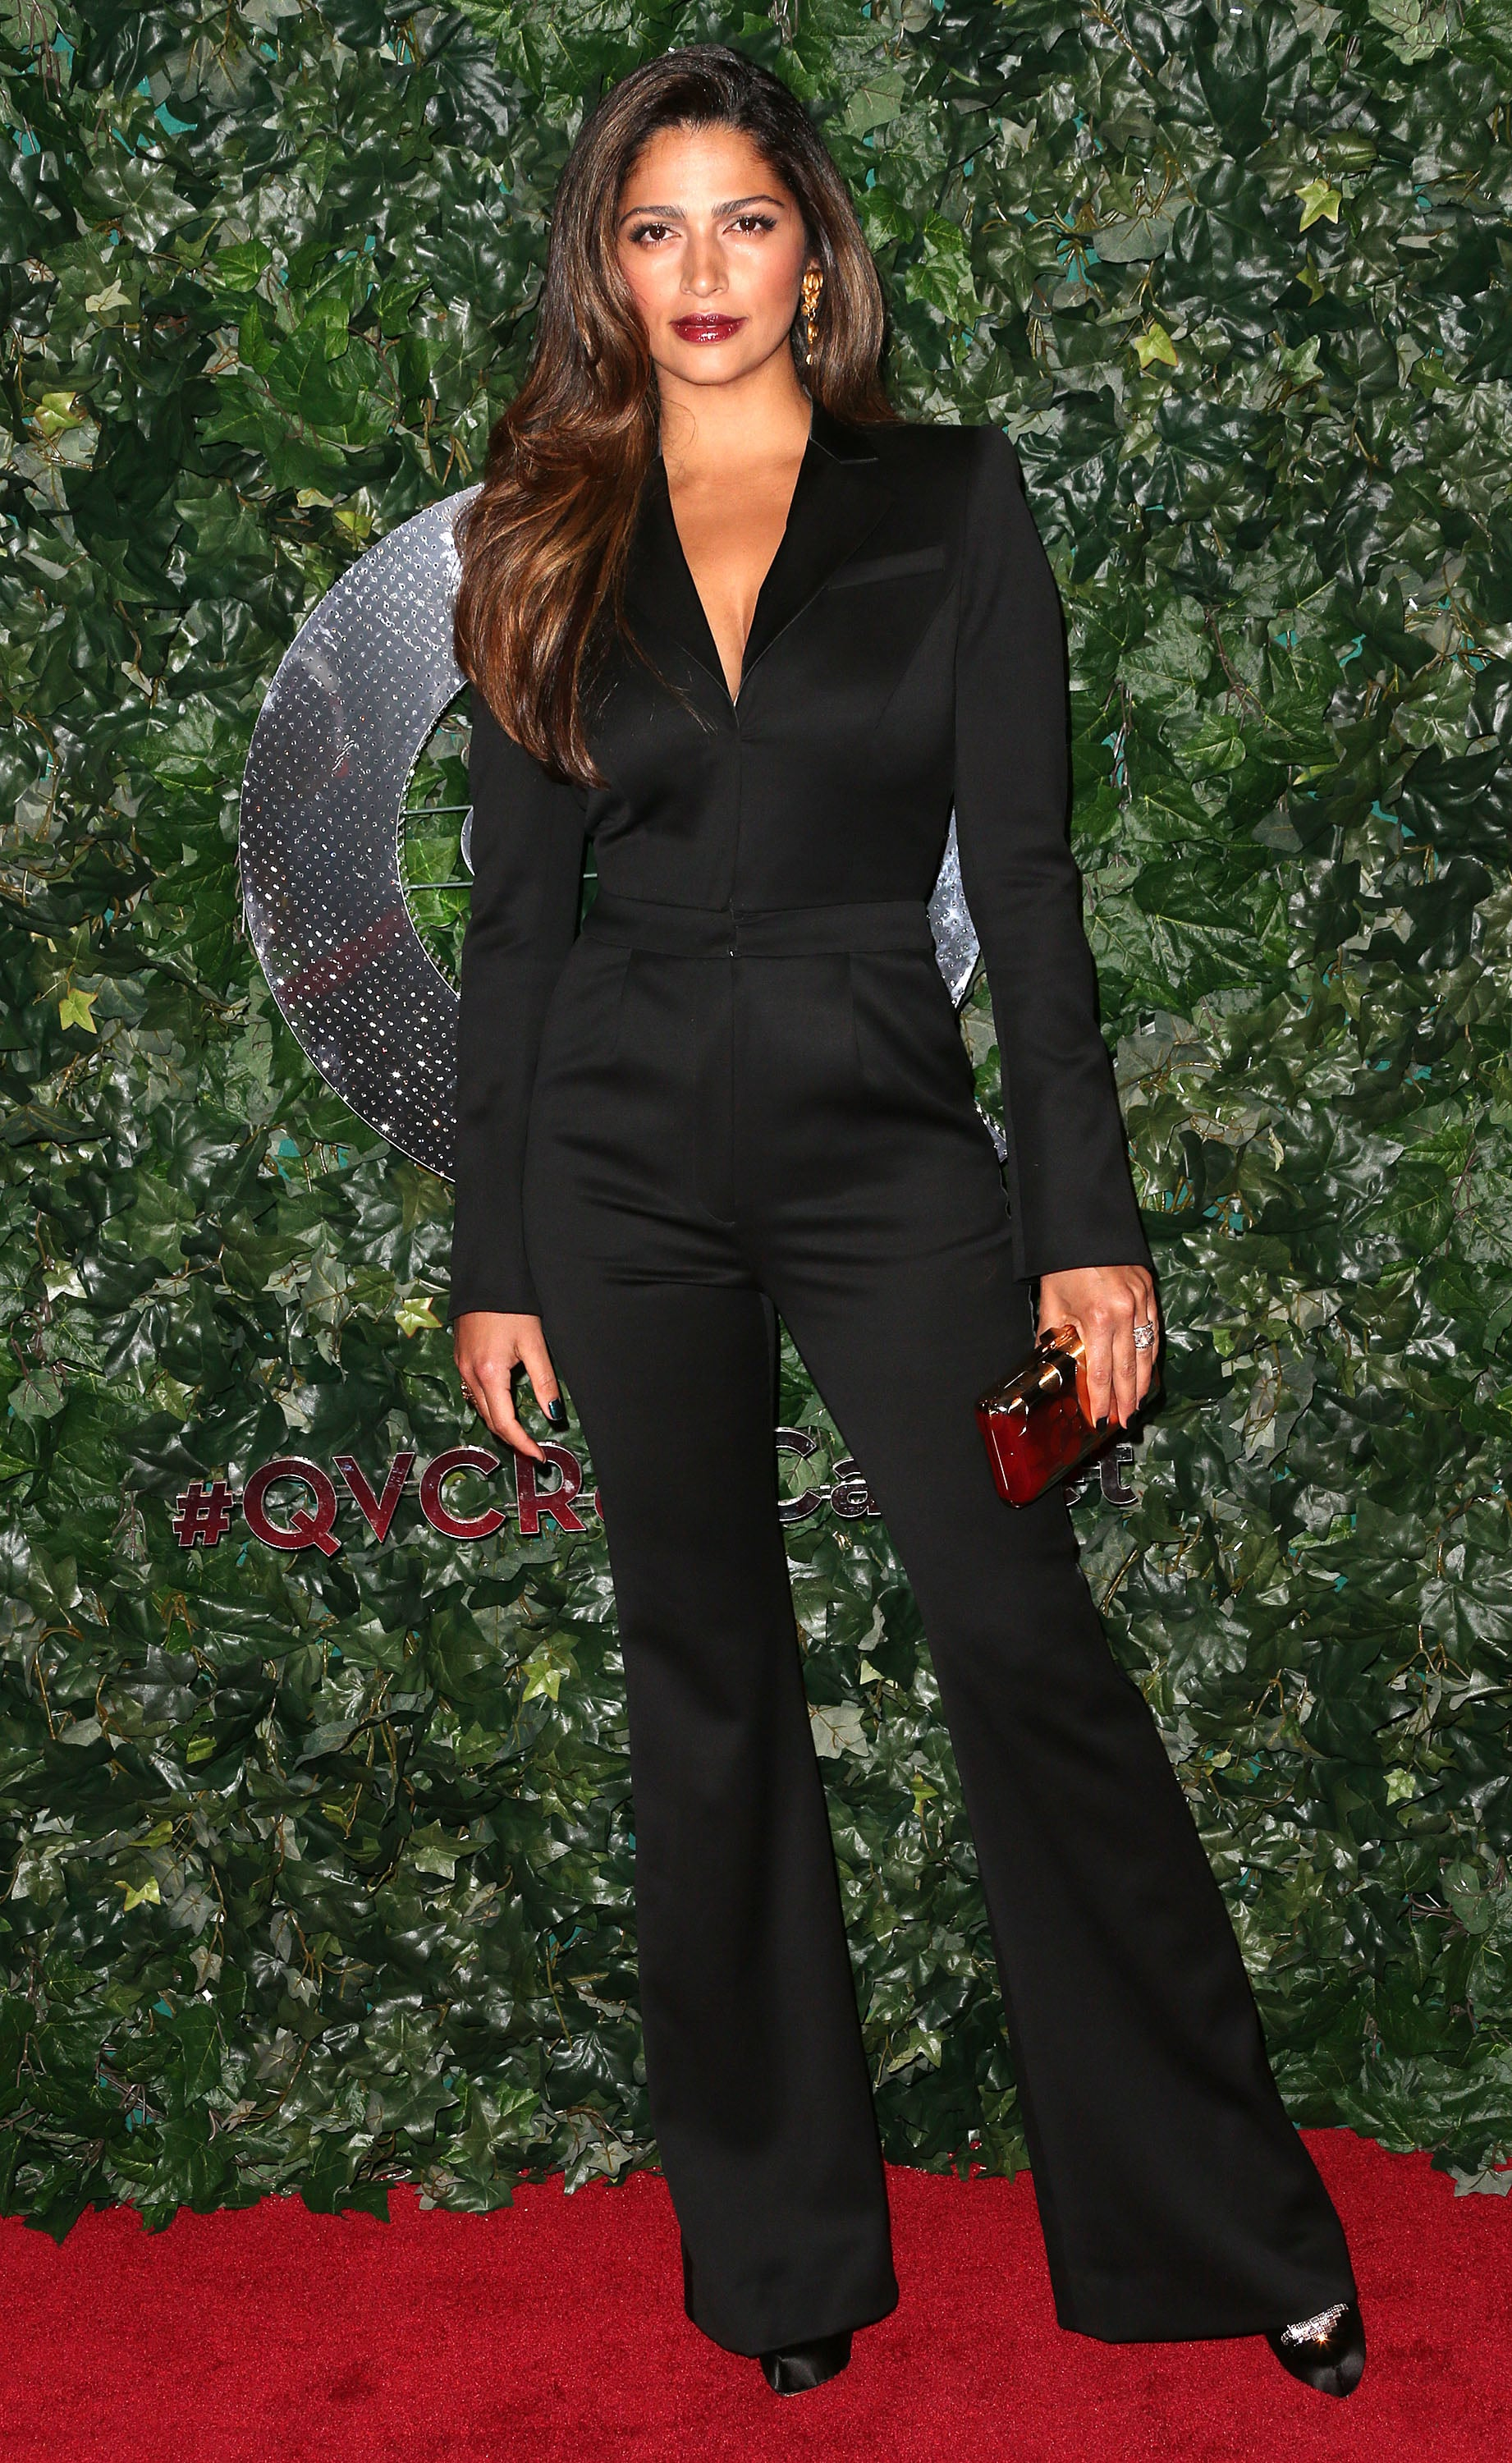 Camila Alves attended QVC's Red Carpet Style event at the Beverly Hills Four Seasons Hotel.